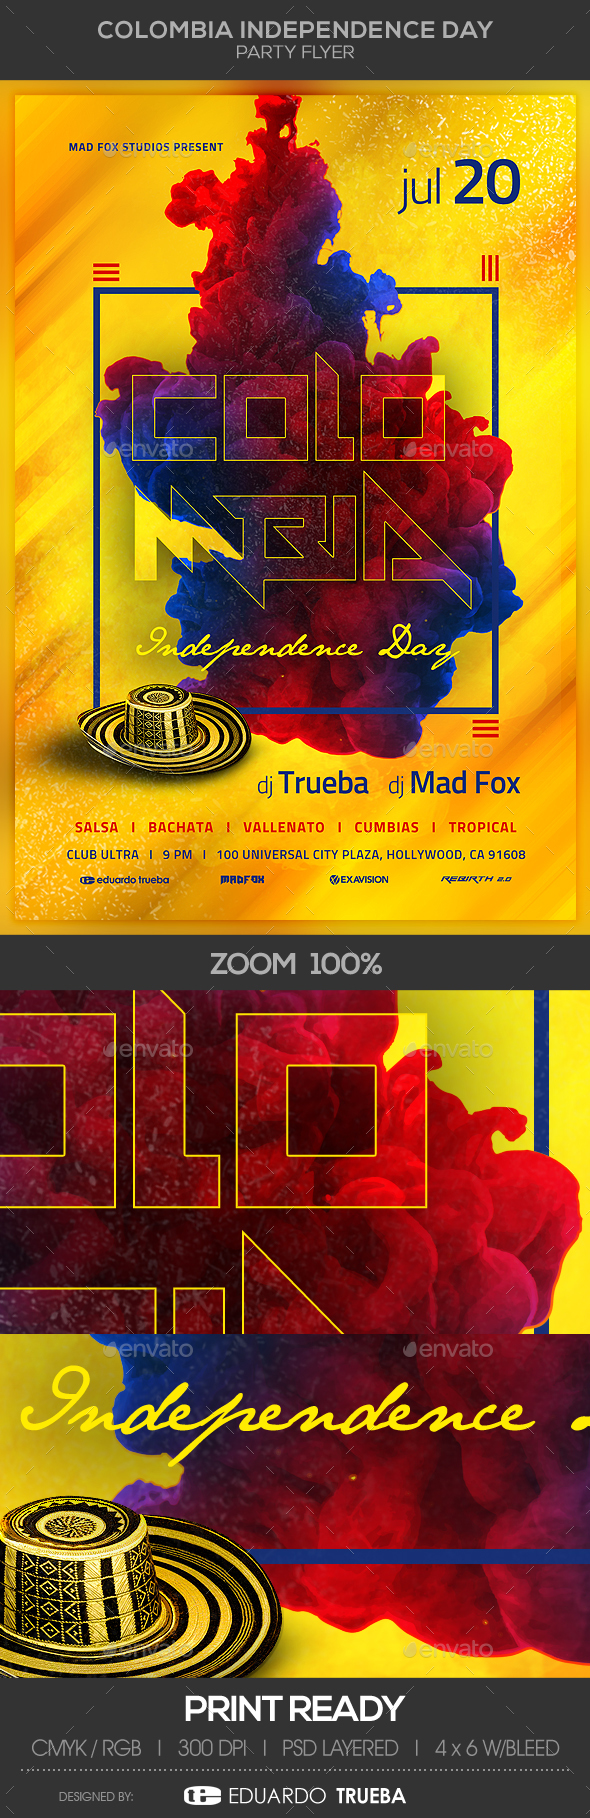 Colombia Independence Day Party Flyer - Clubs & Parties Events